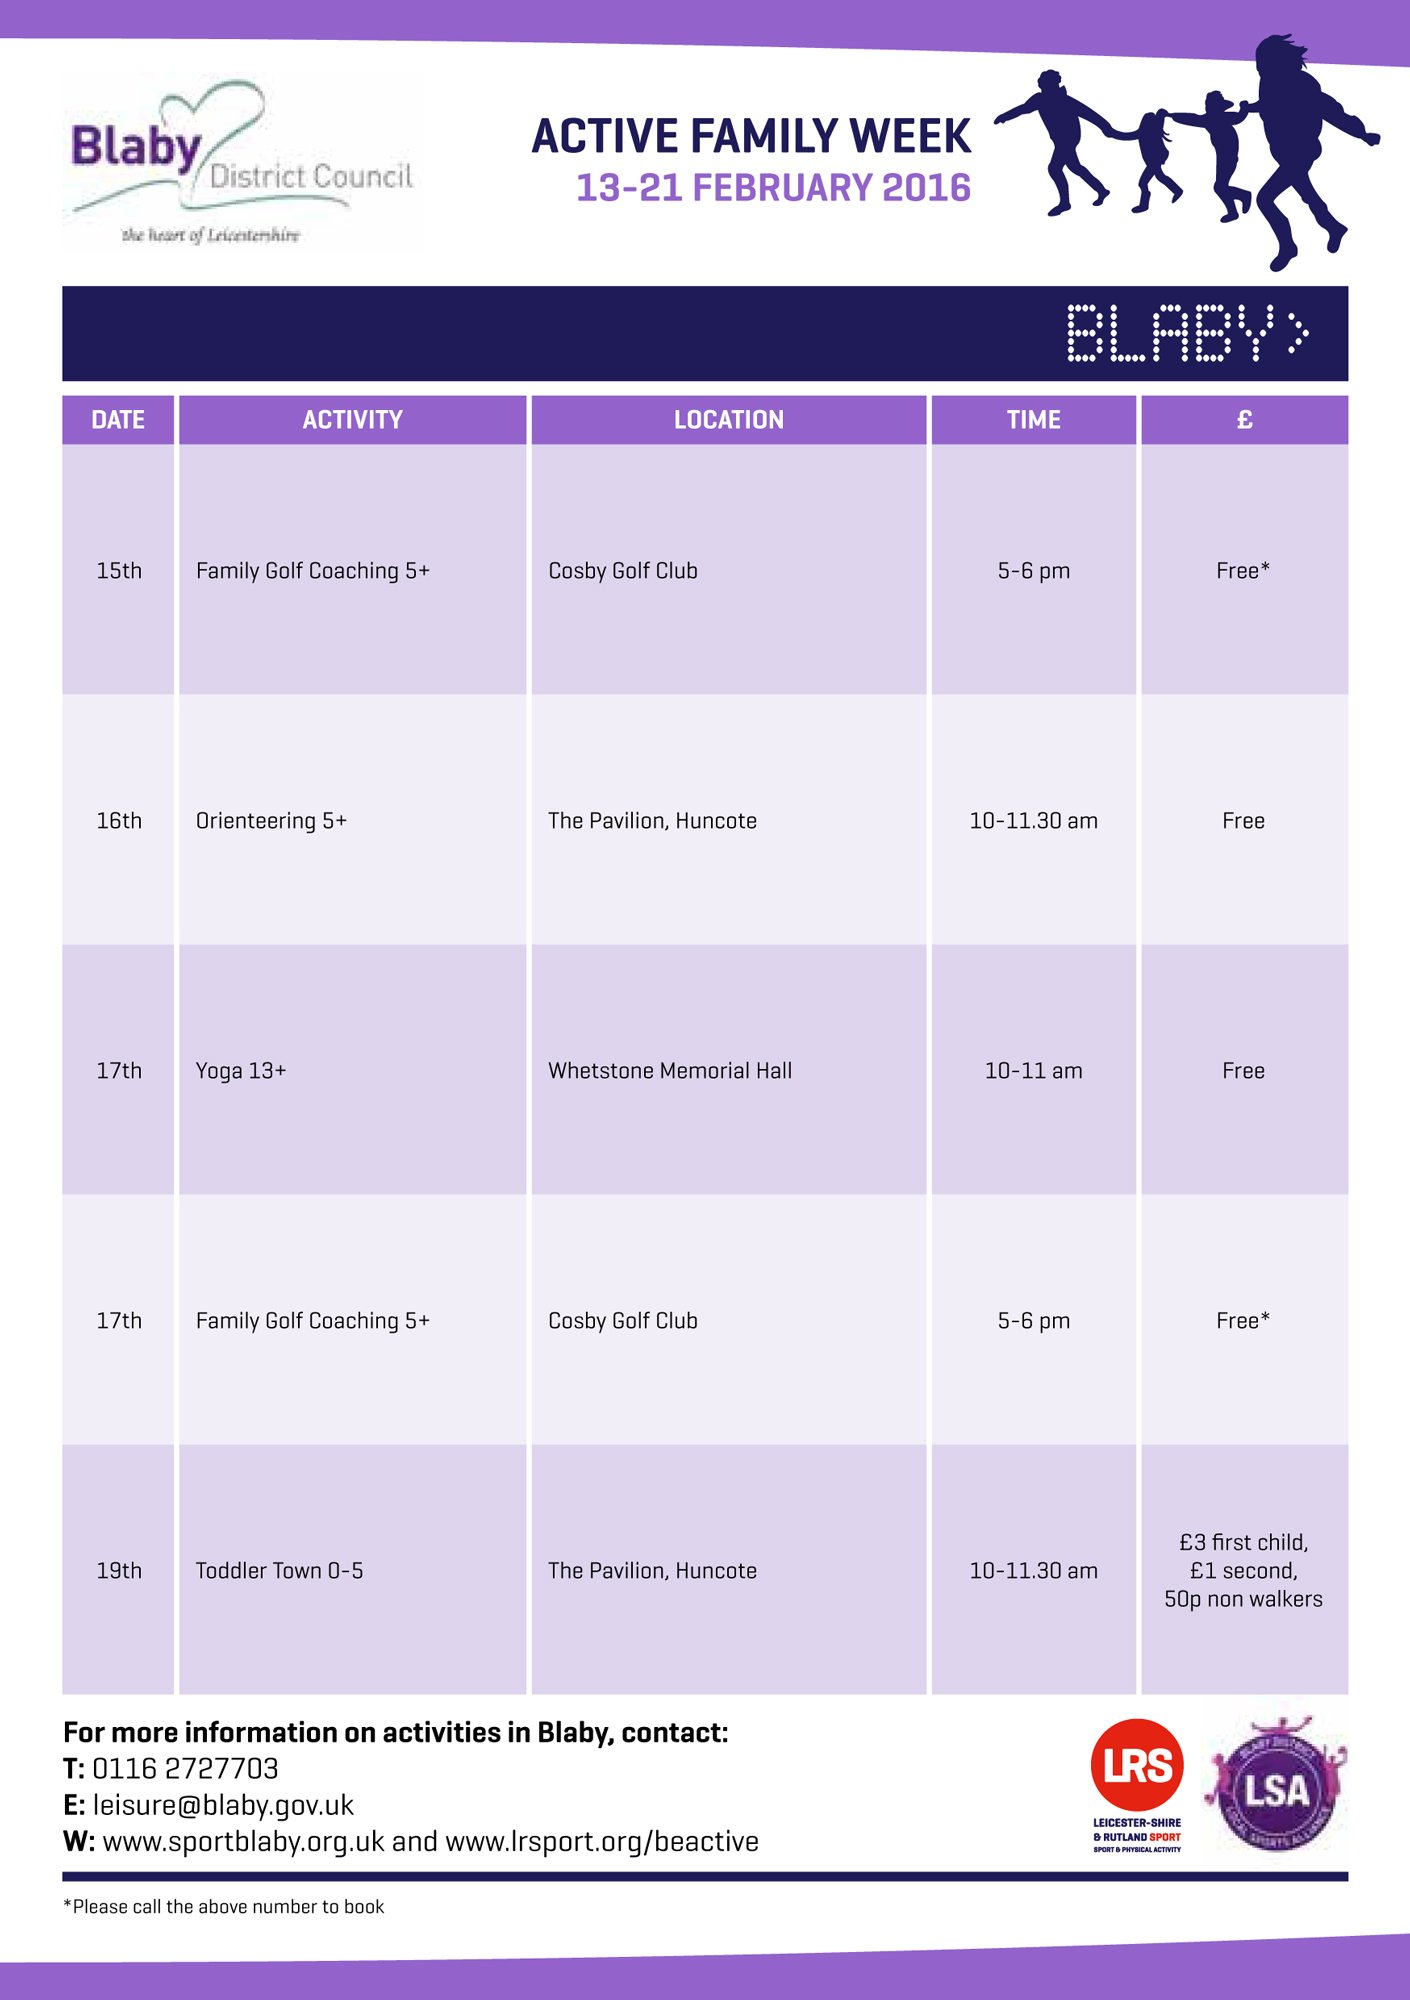 RT @BlabyDC: It's #activefamily week in the district this with plenty on offer. See what activities you can do! @LR_Sport https://t.co/PIe1…